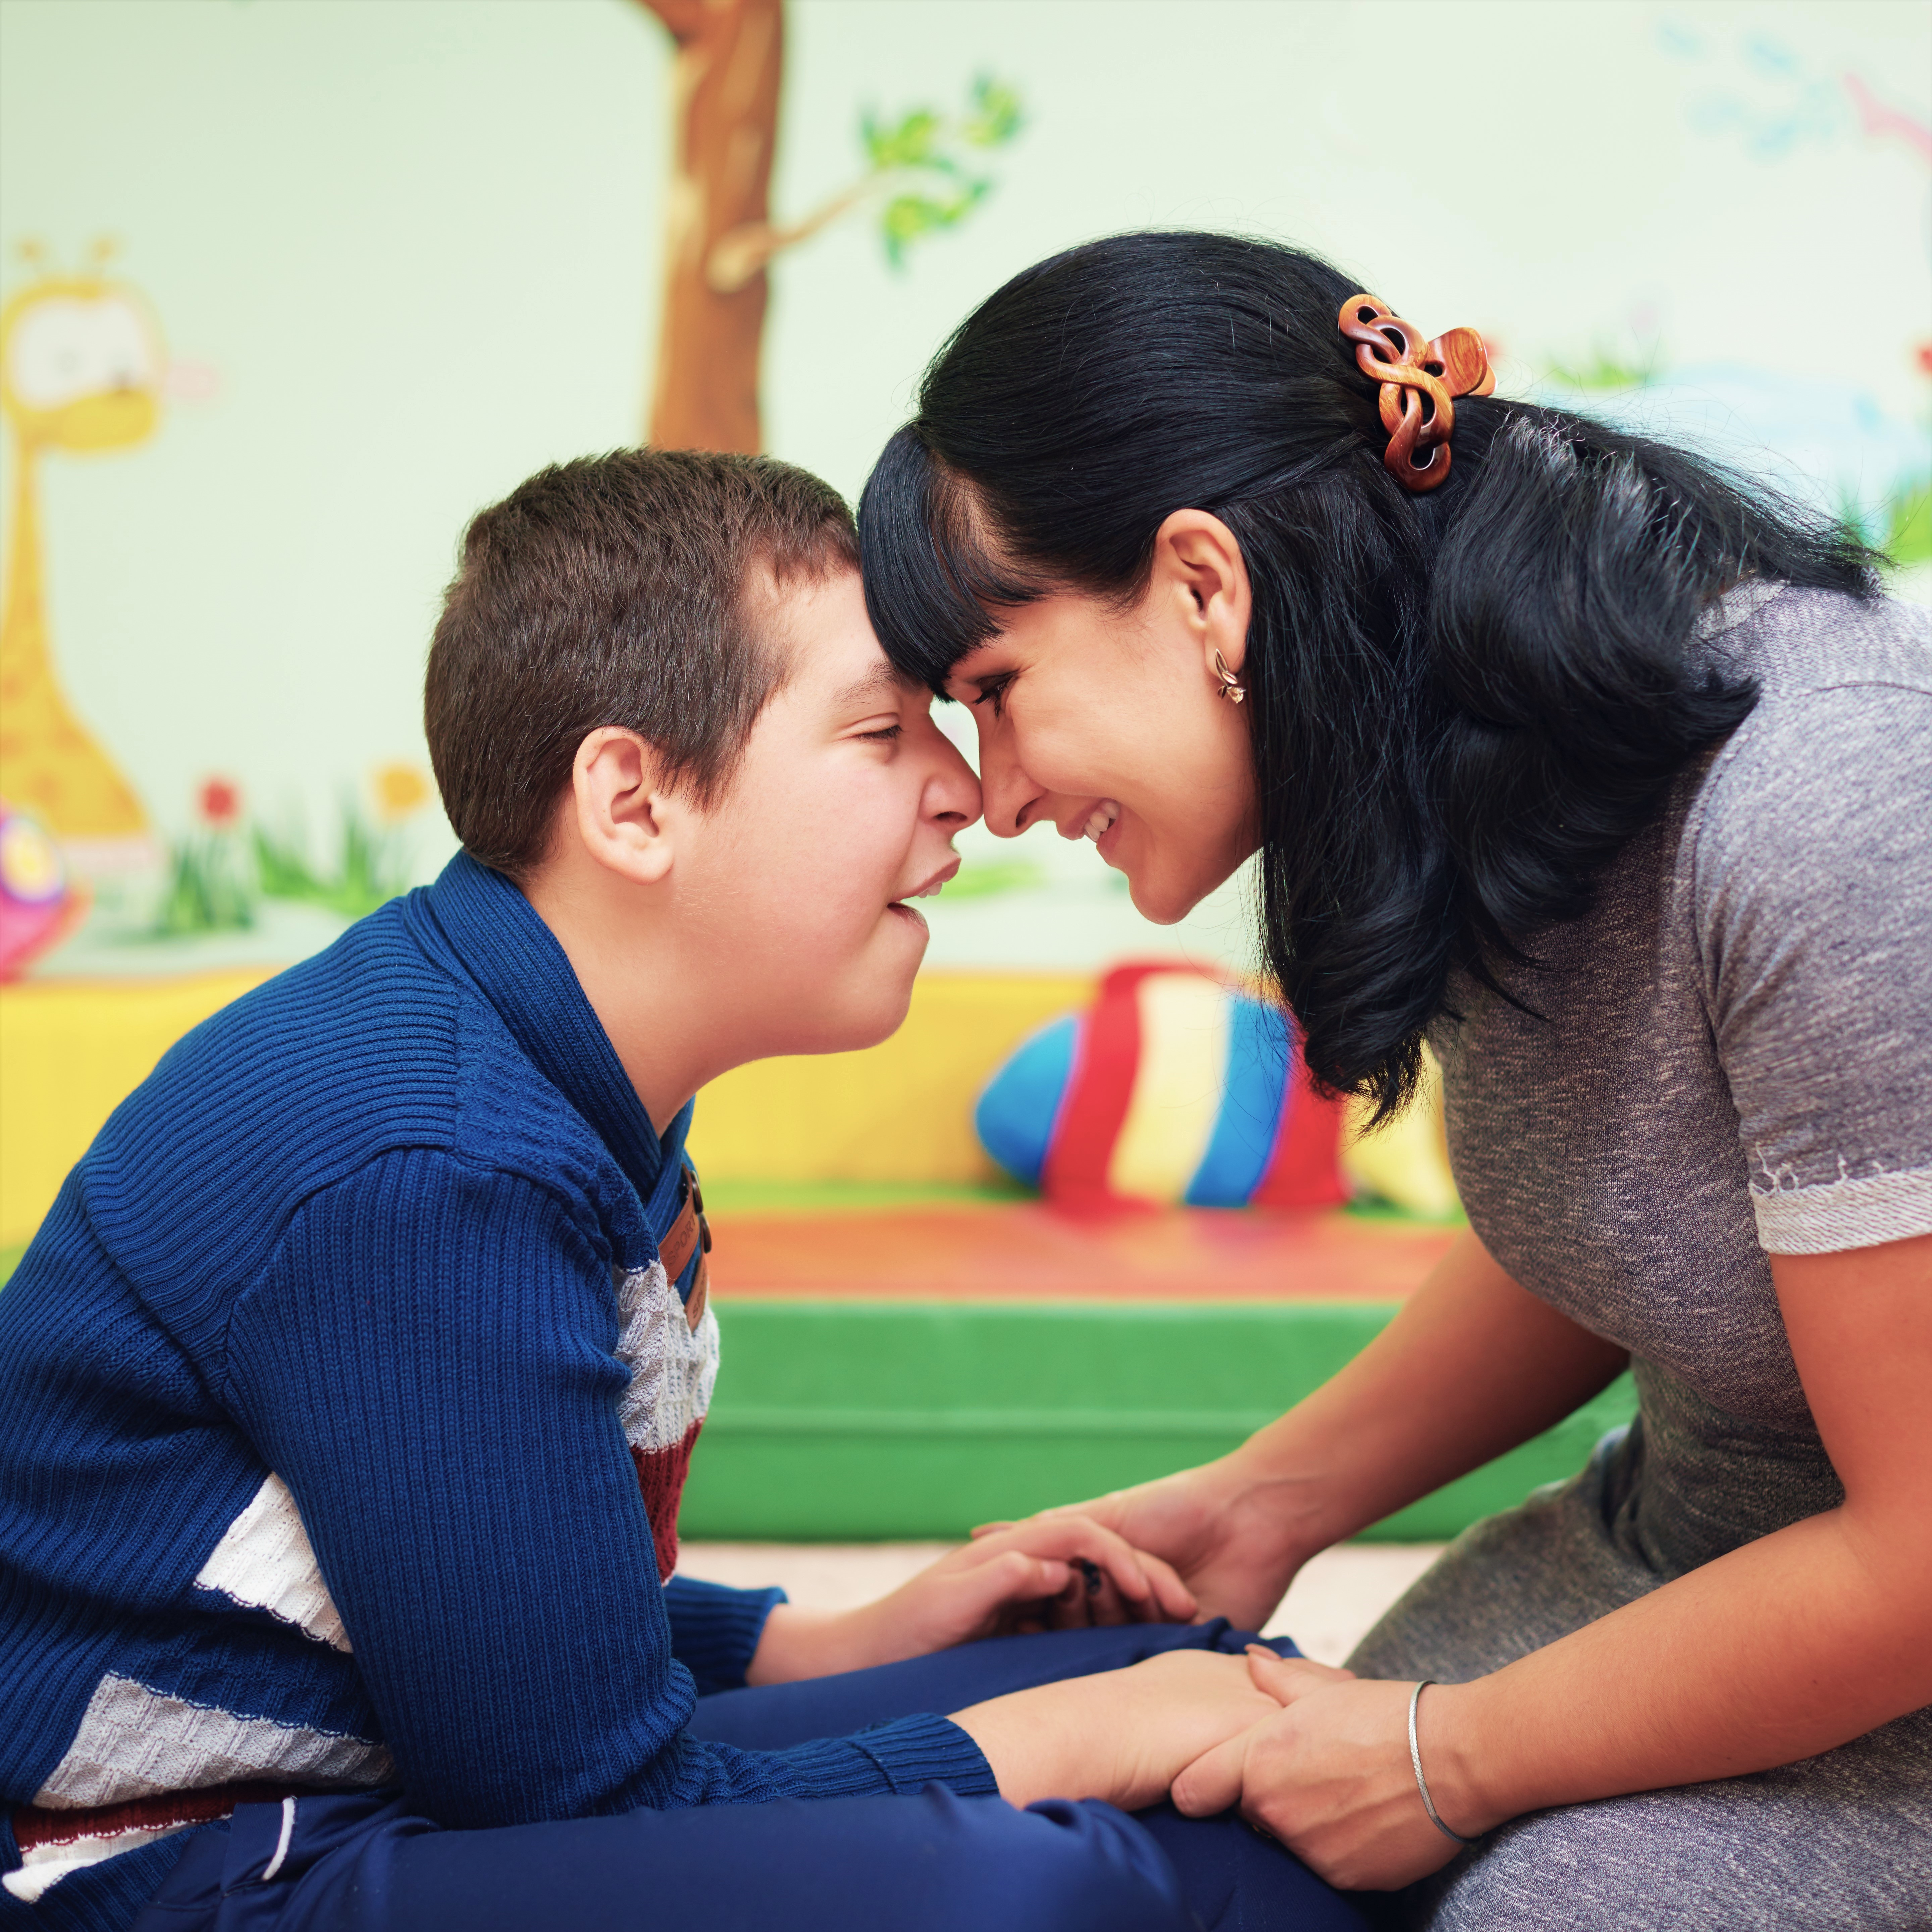 Child with cognitive disability touches his forehead to a woman's forehead. They are both smiling and seem very happy.